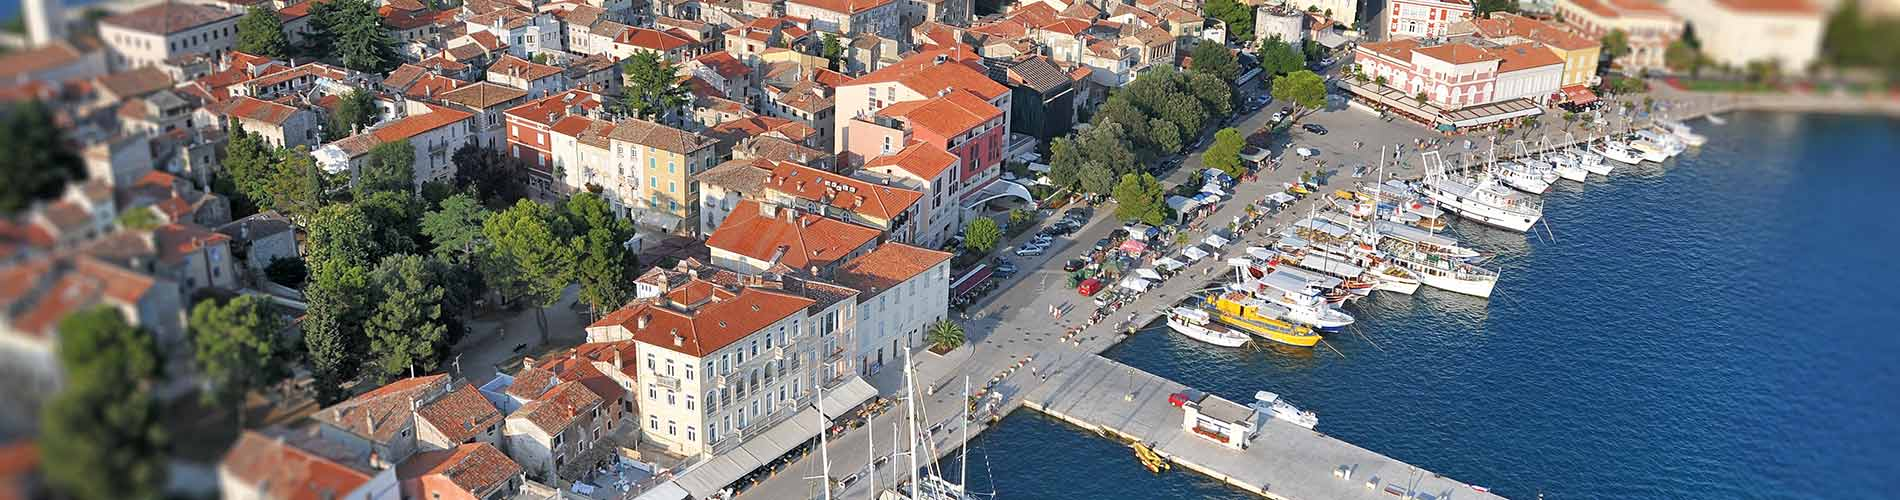 Porec promenade and marina from the air.jpg